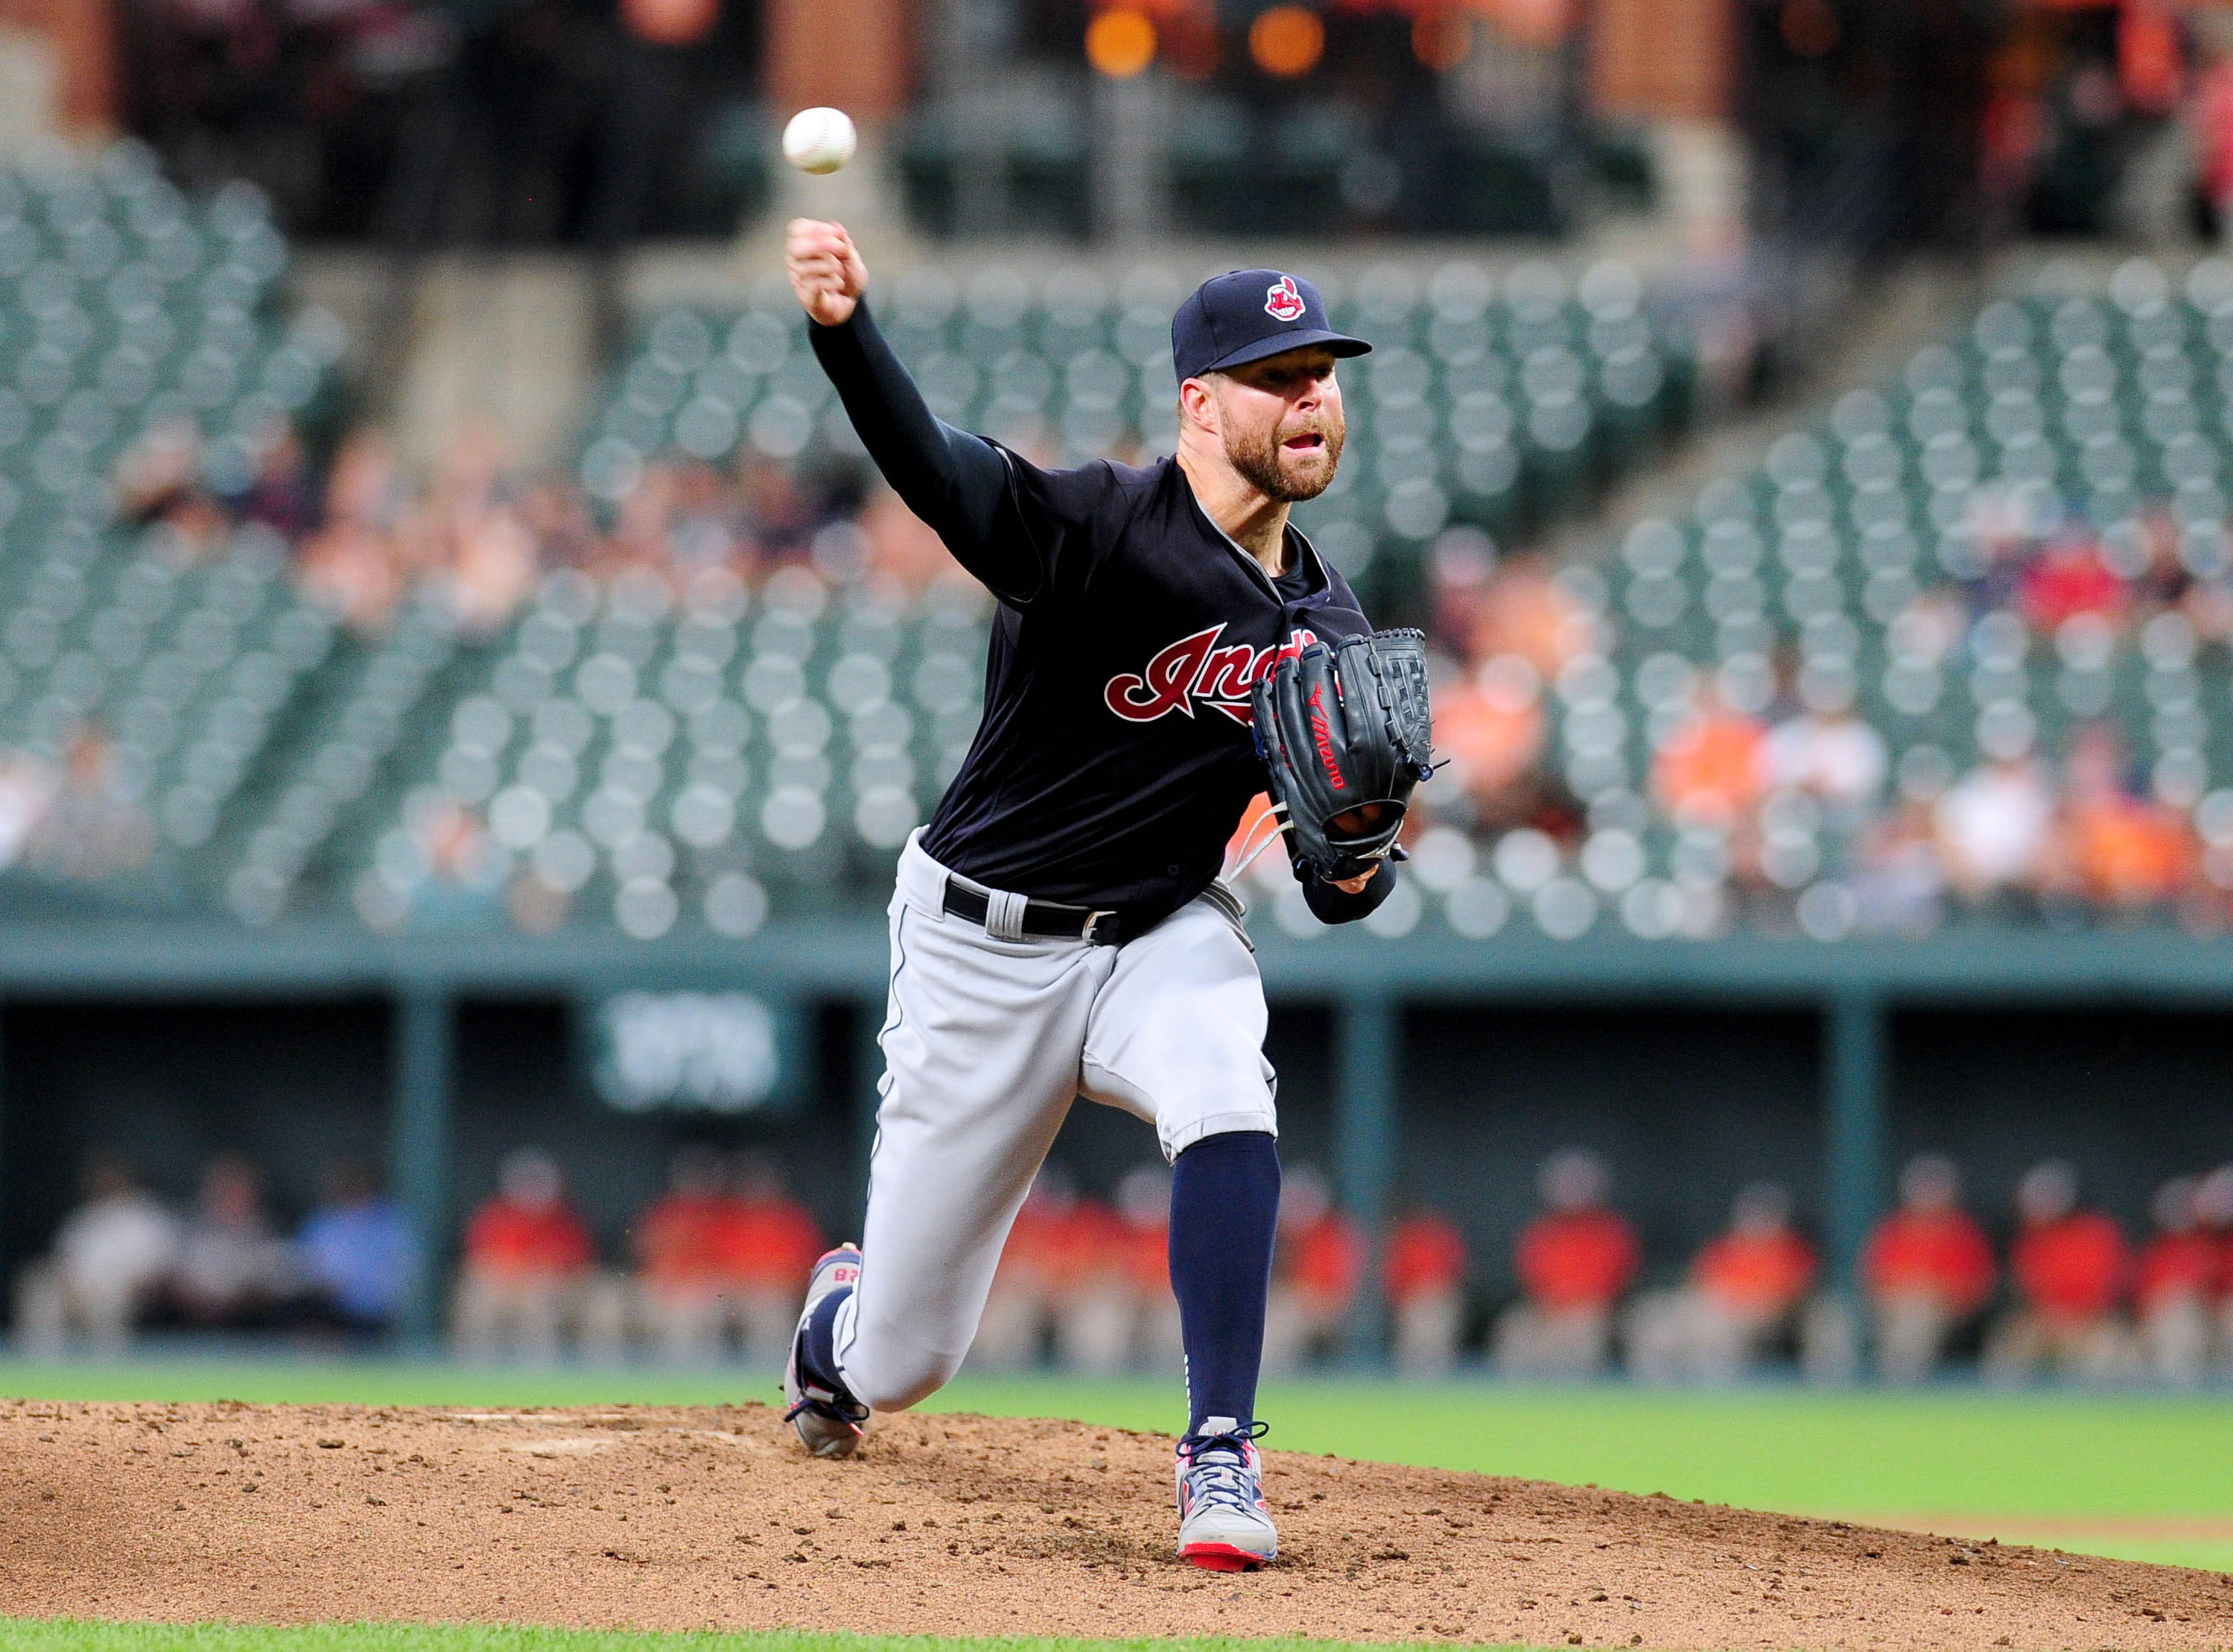 10121377-mlb-cleveland-indians-at-baltimore-orioles